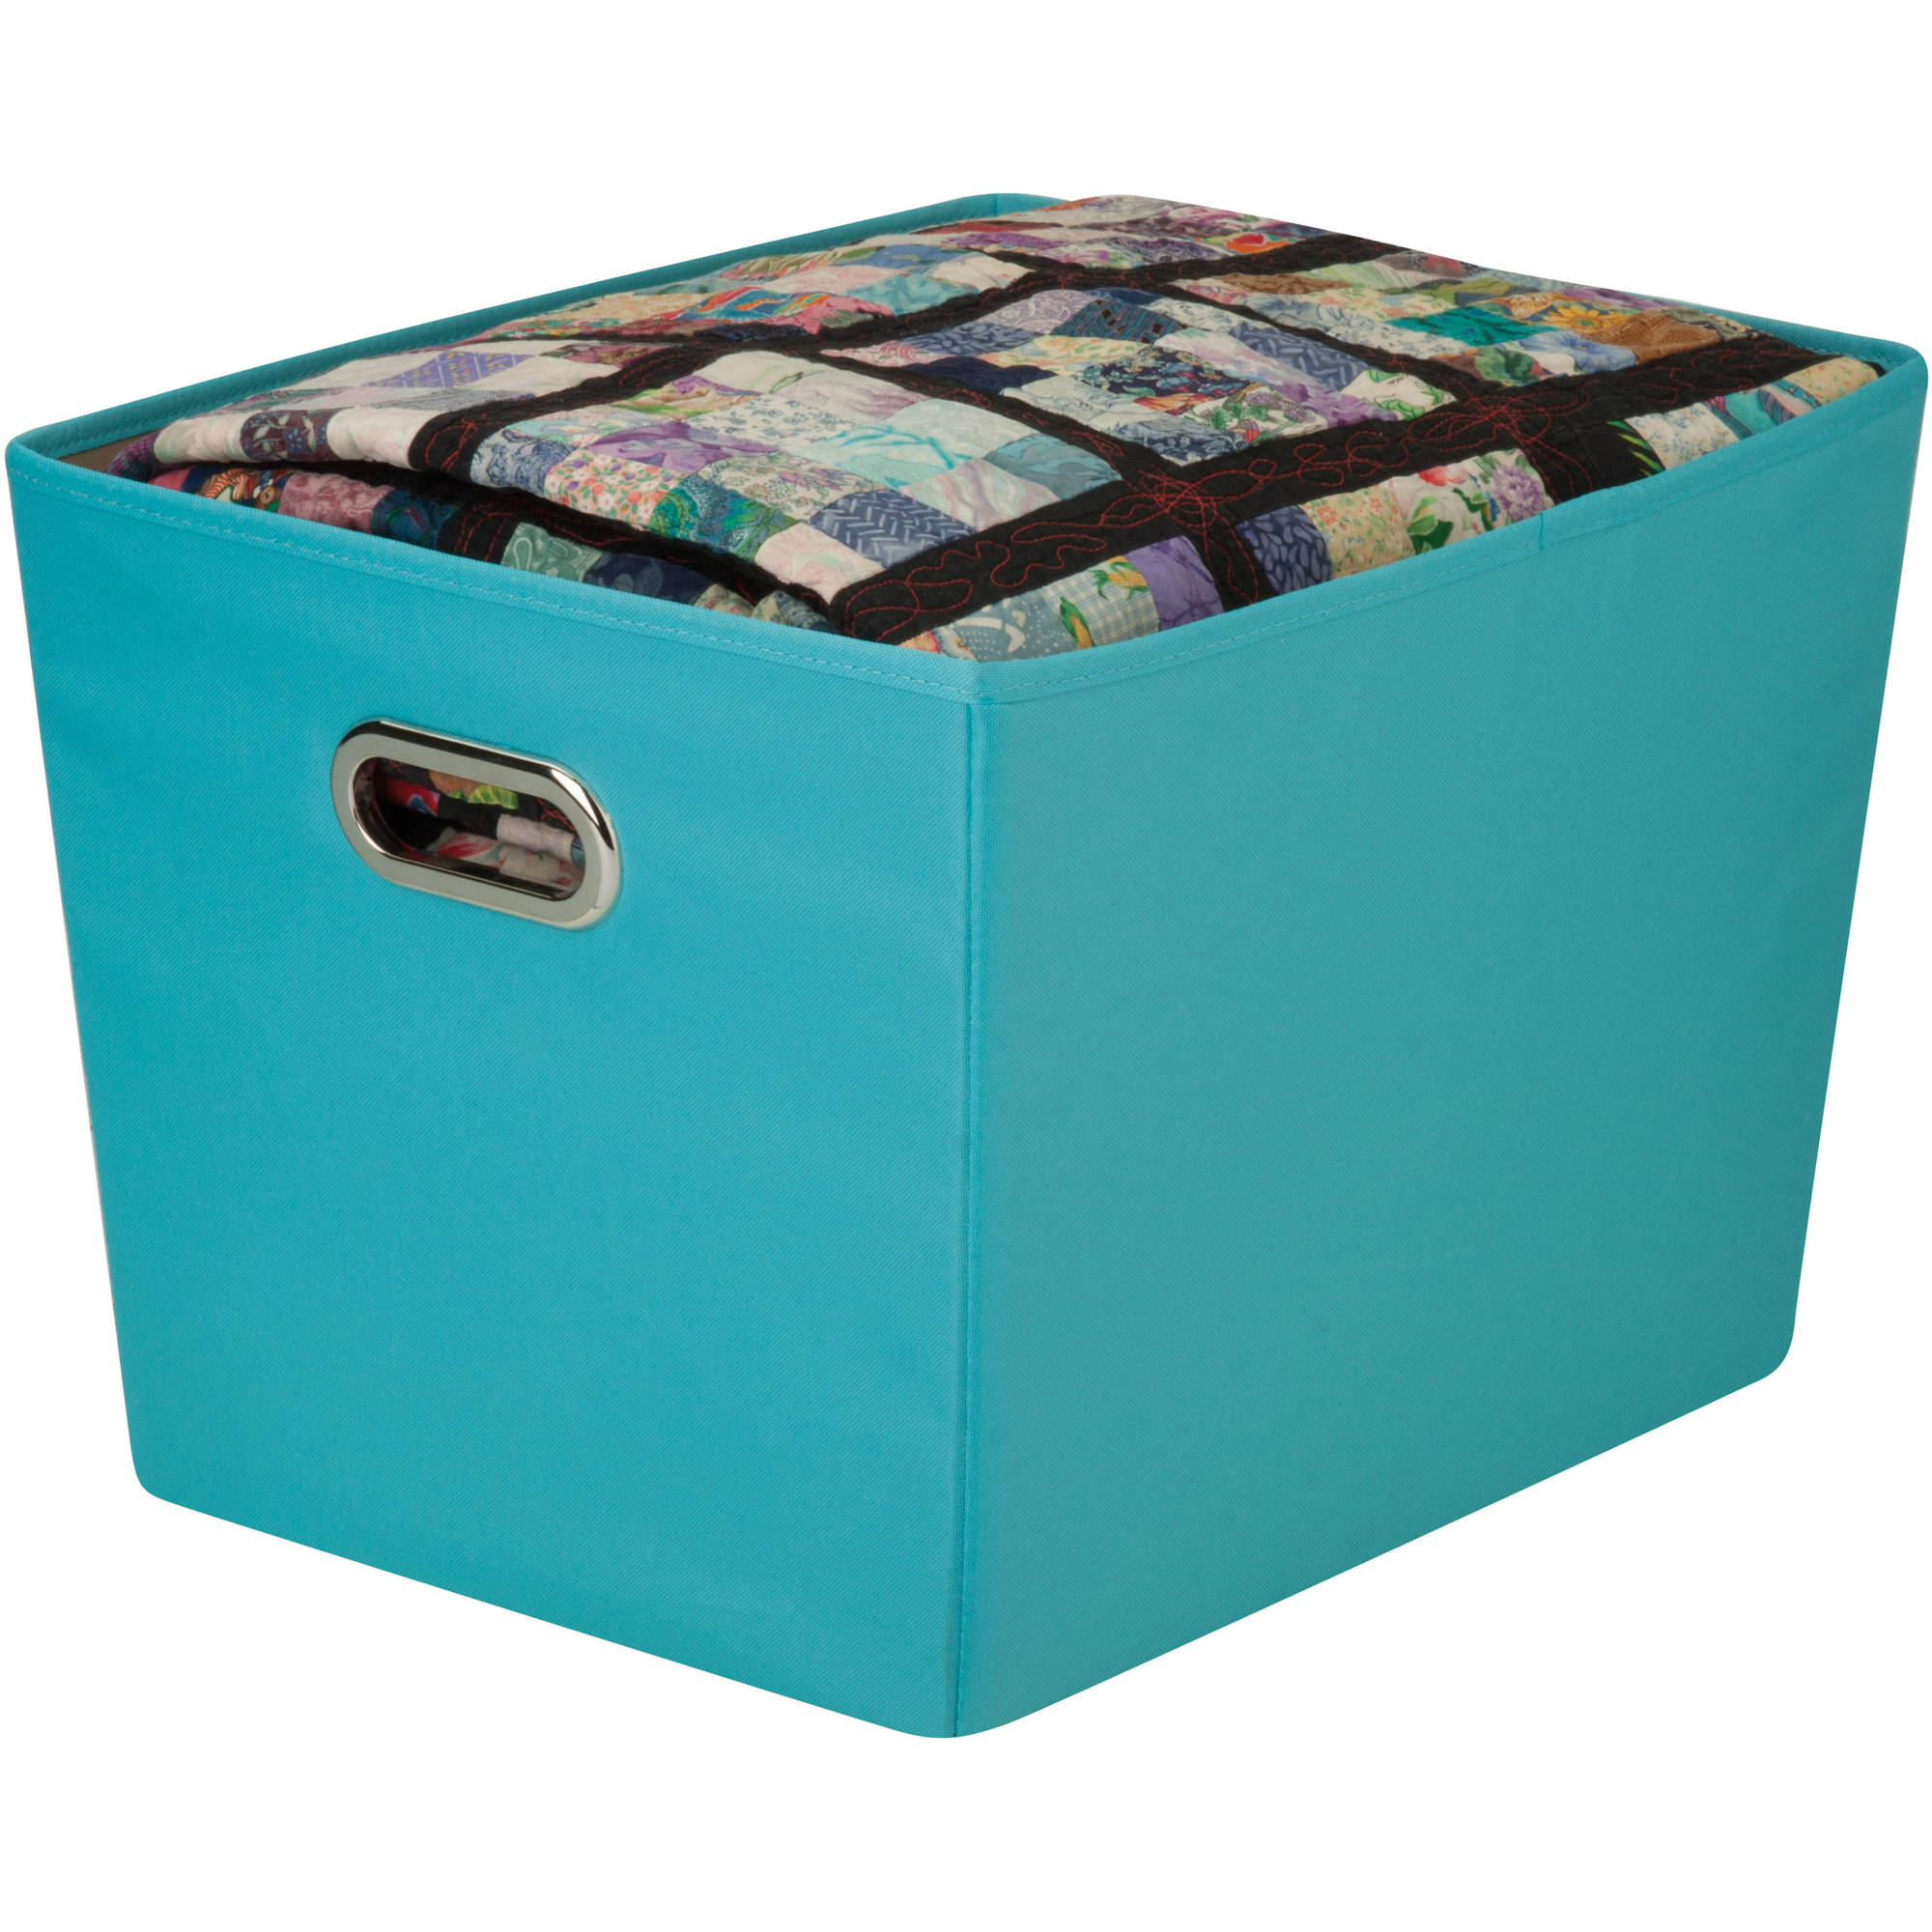 Honey Can Do SFT-01994 Large Decorative Storage Bin with Handles by Honey Can Do